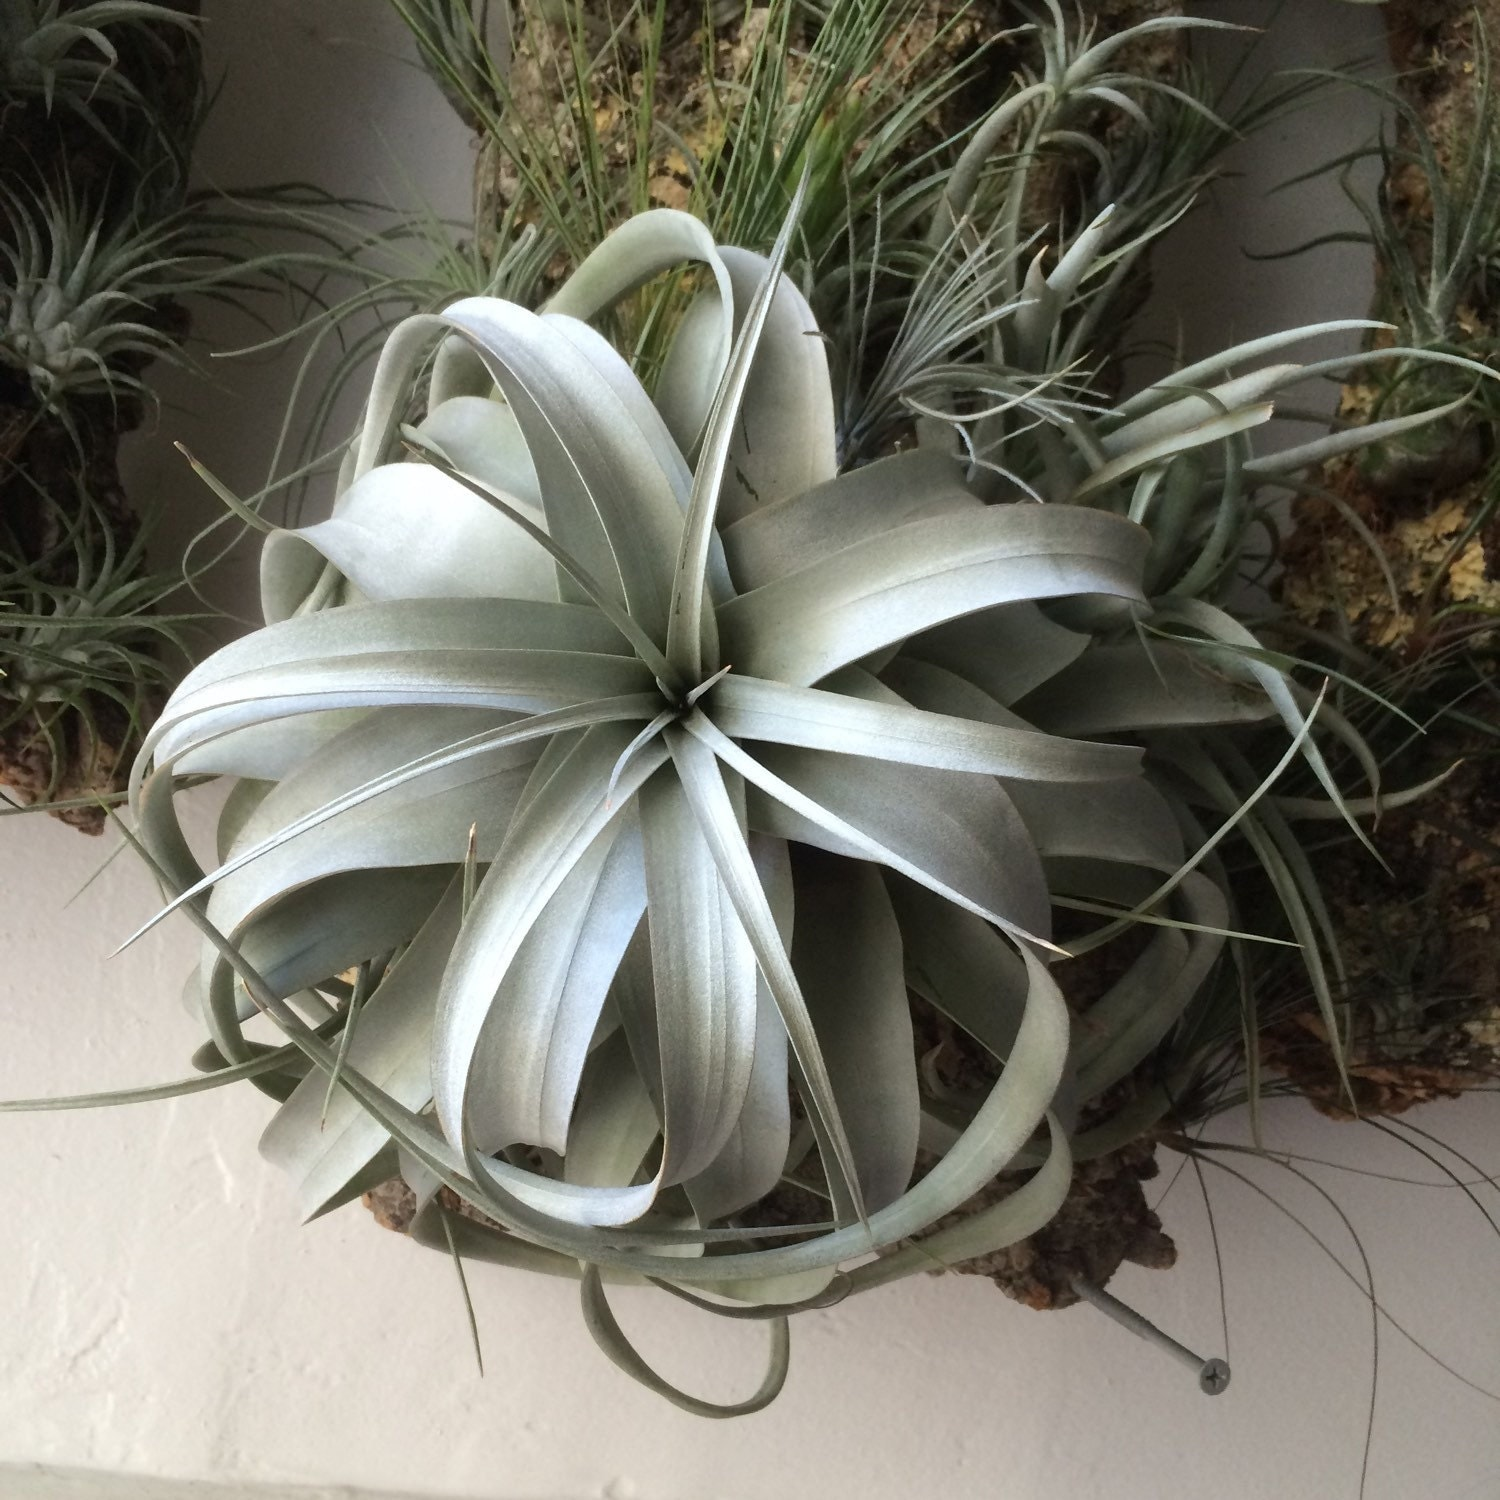 Huge Tillandsia Xerographica Air Plants For Sale 8